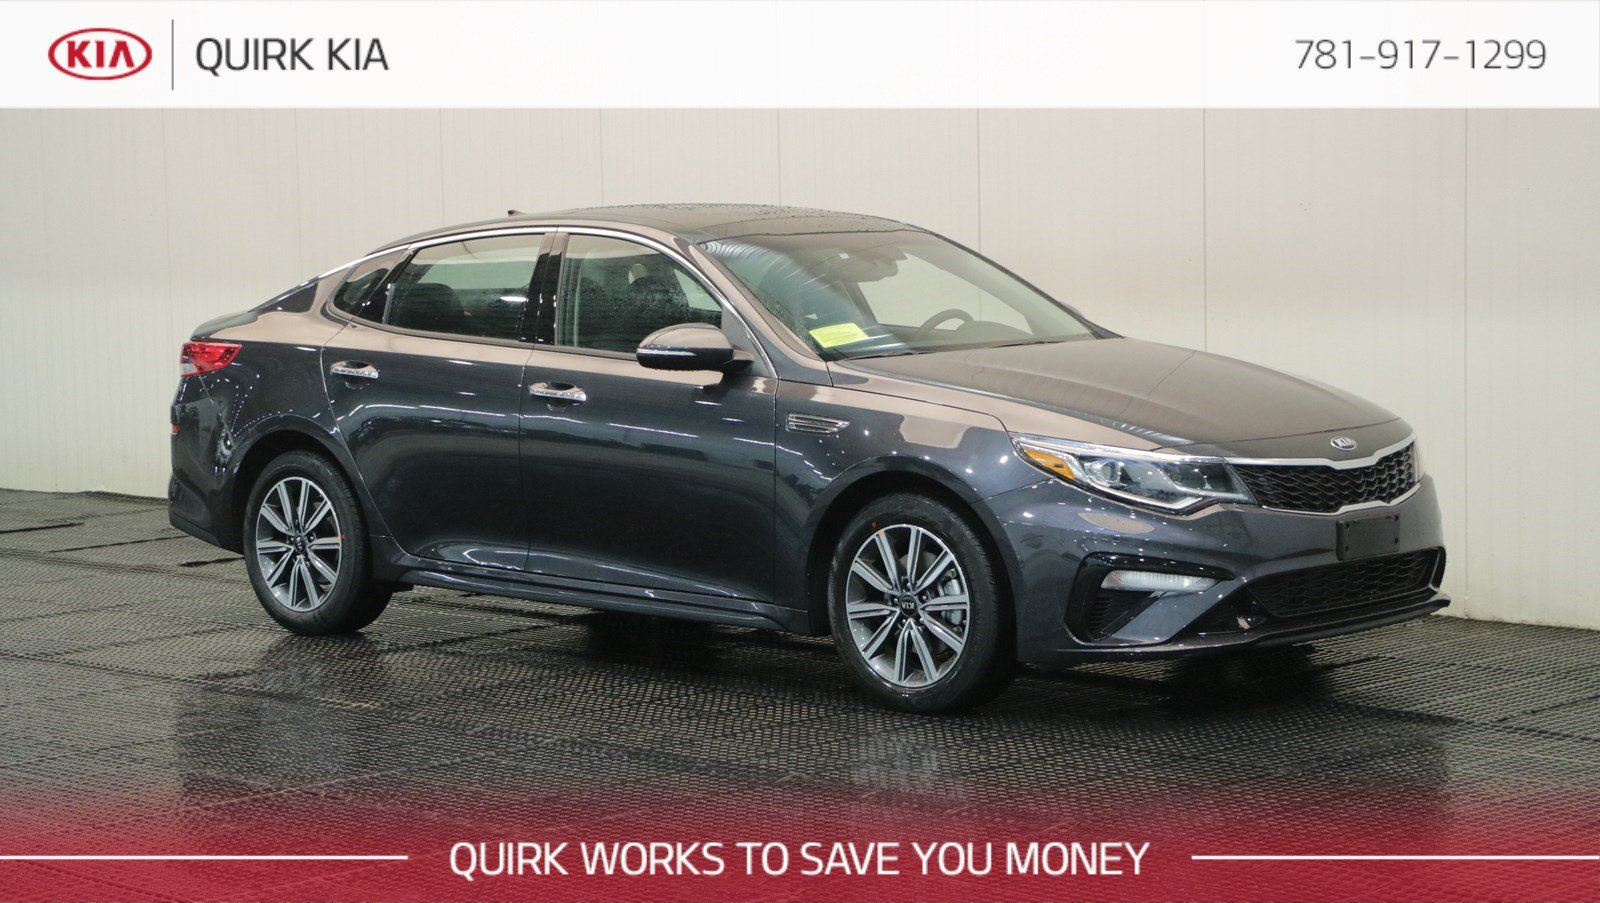 Kia Optima: Parking Brake and Brake Fluid Warning